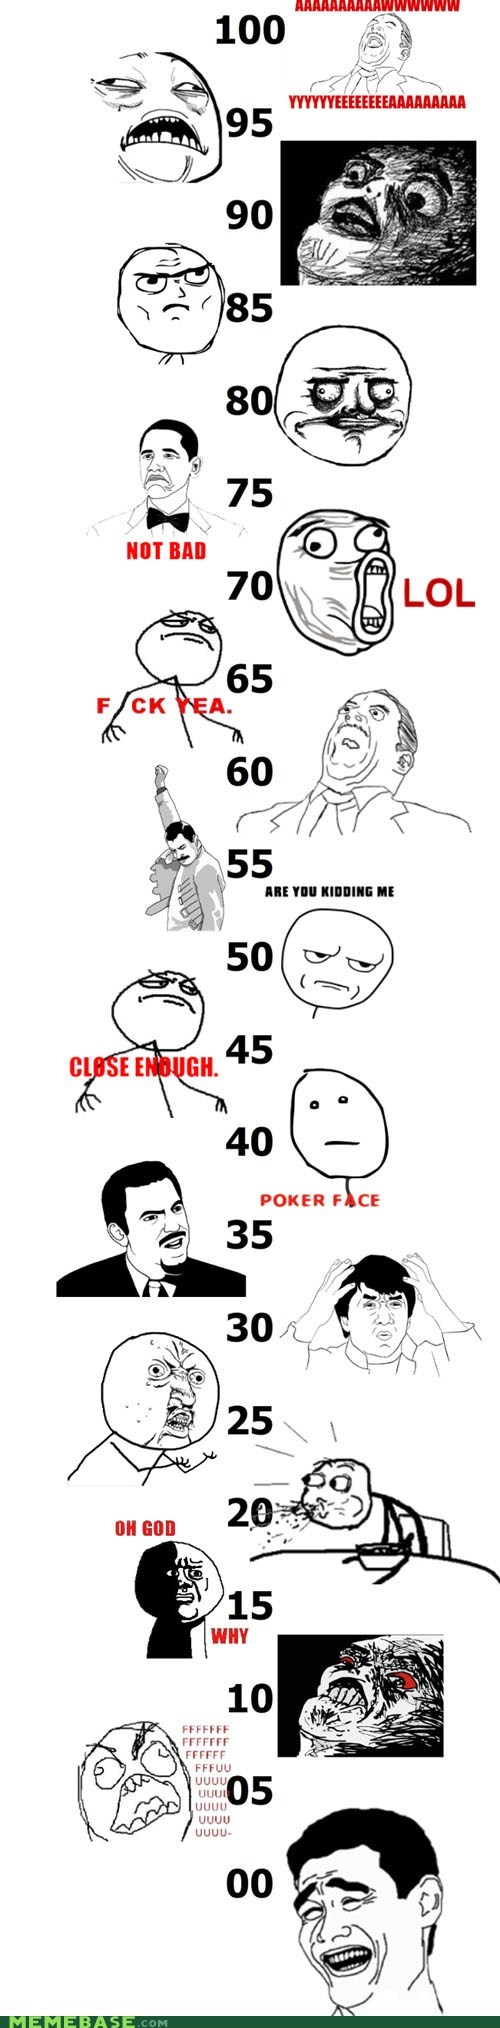 best of week faces grades Rage Comics school - 5714898432